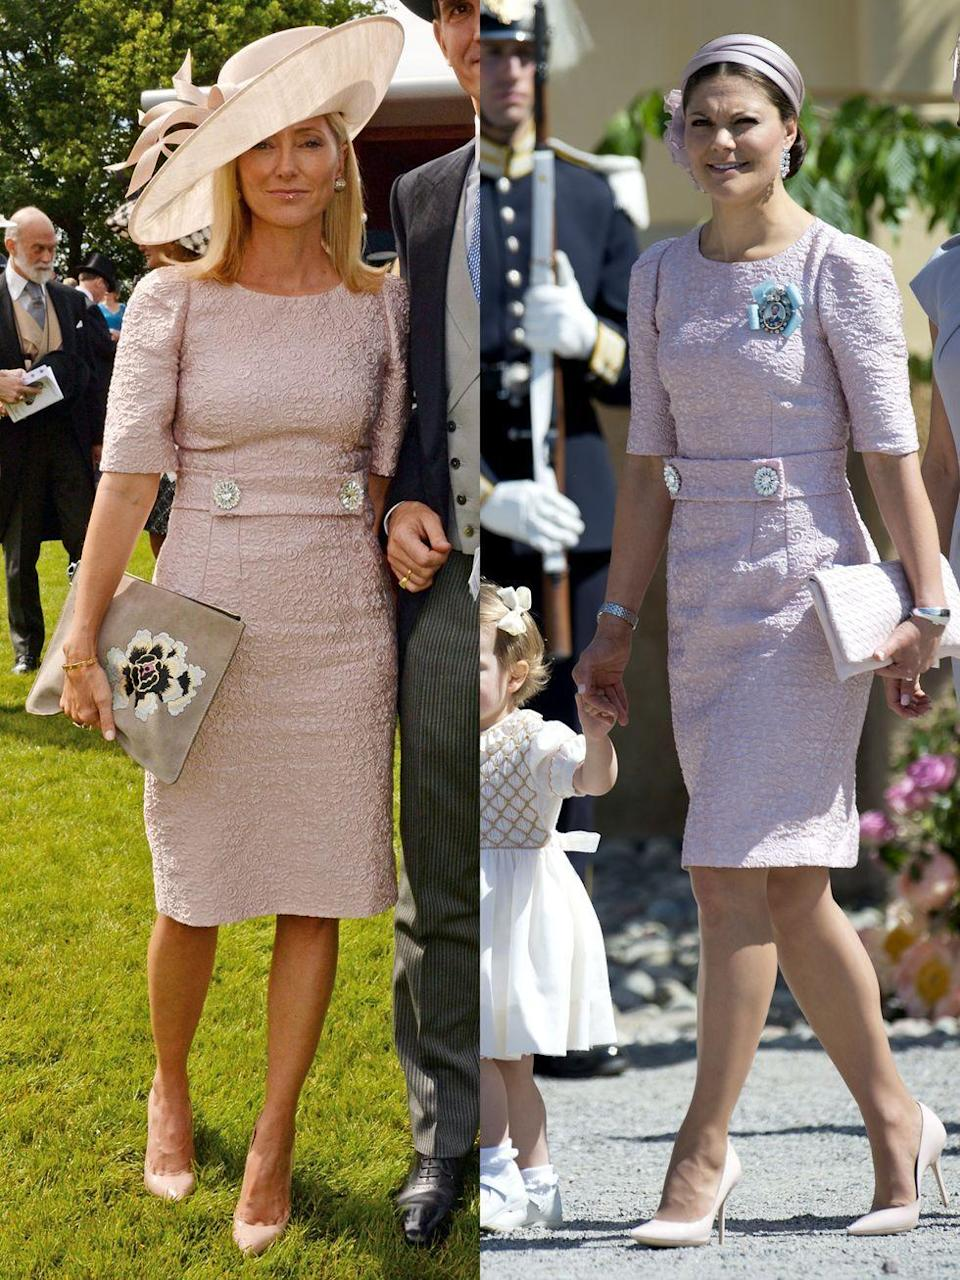 <p><strong>Left: </strong>Crown Princess Marie-Chantal of Greece attended Derby Day in Epsom, England wearing a pink Dolce and Gabbana dress with button accents.</p><p><strong>Right: </strong>Just days later, Sweden's Crown Princess Victoria wore the exact same style (though she opted for a less-striking topper) to Princess Leonore's christening. </p>